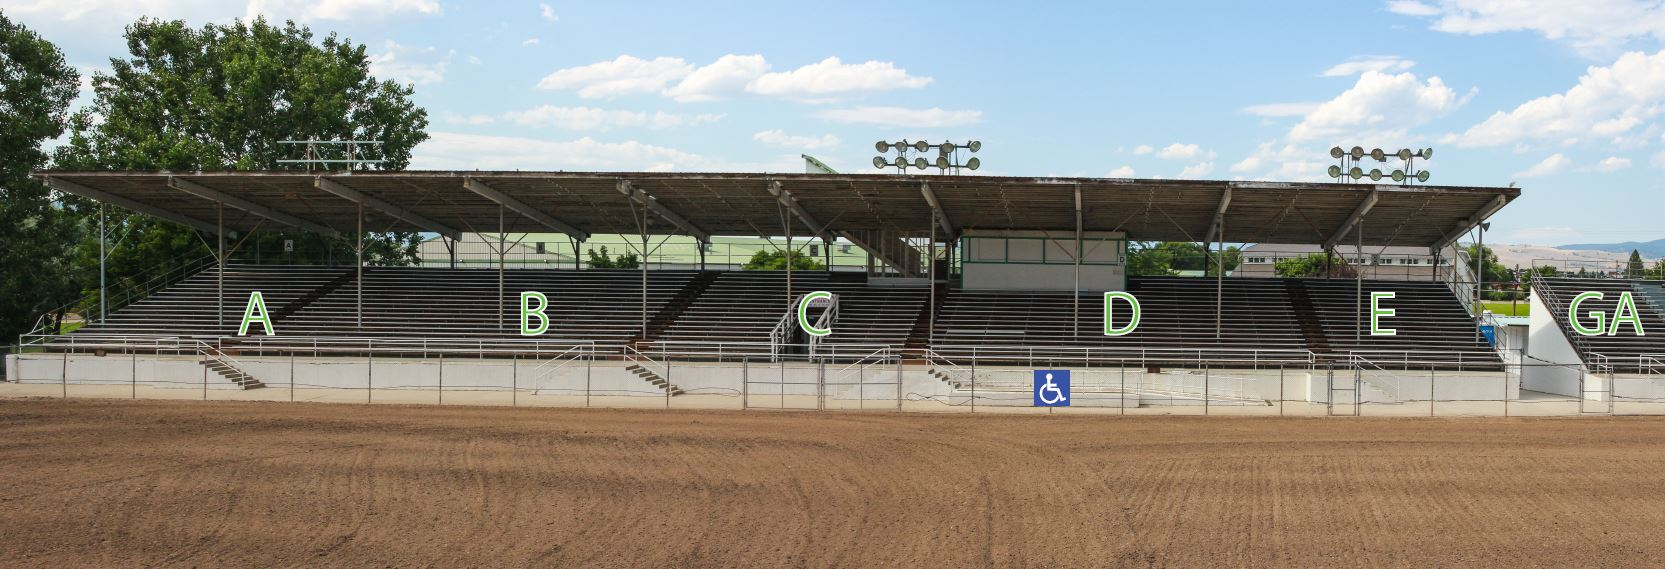 Grandstands Layout